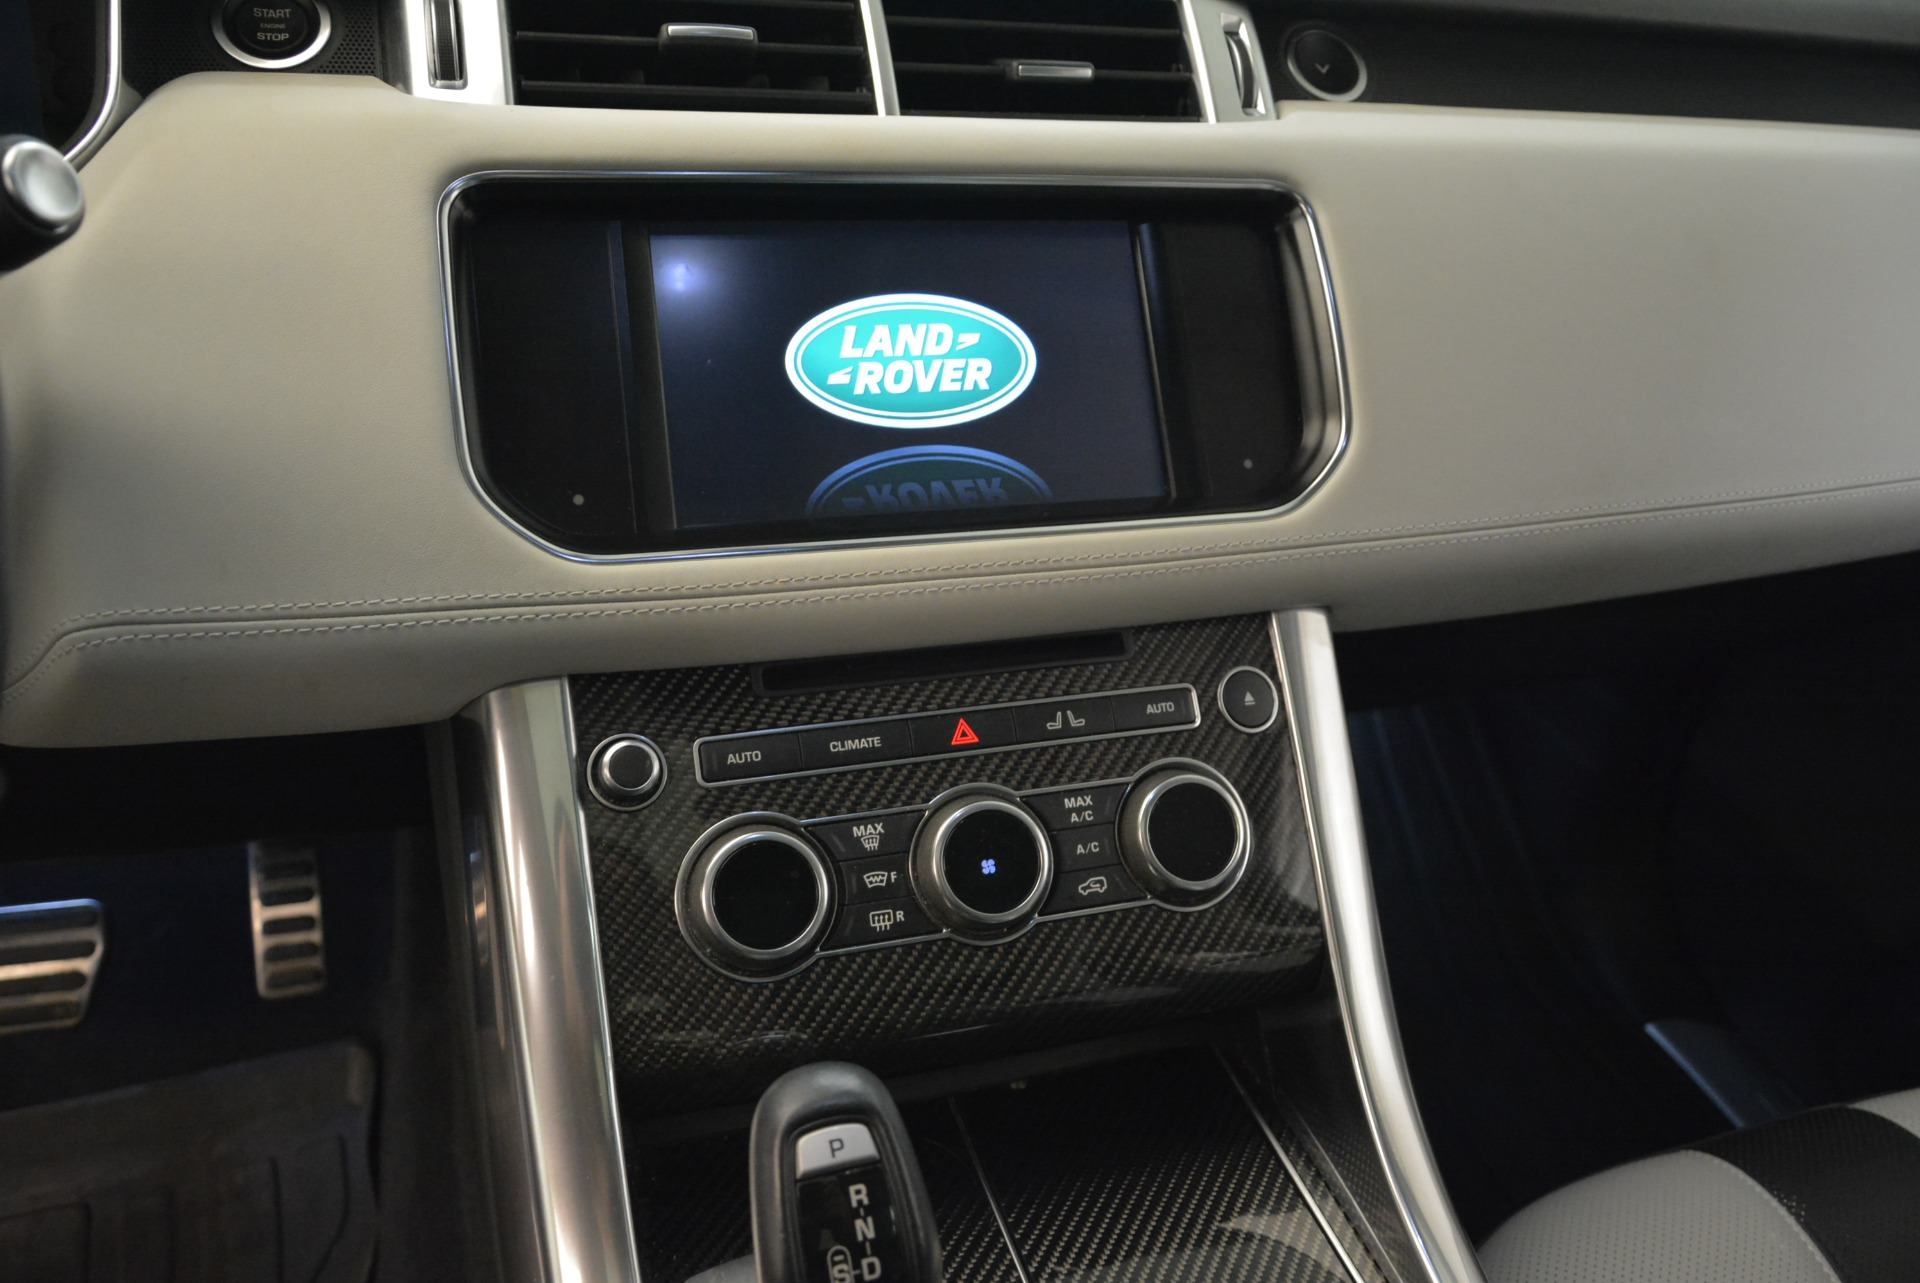 Used 2015 Land Rover Range Rover Sport SVR For Sale In Greenwich, CT 2046_p20